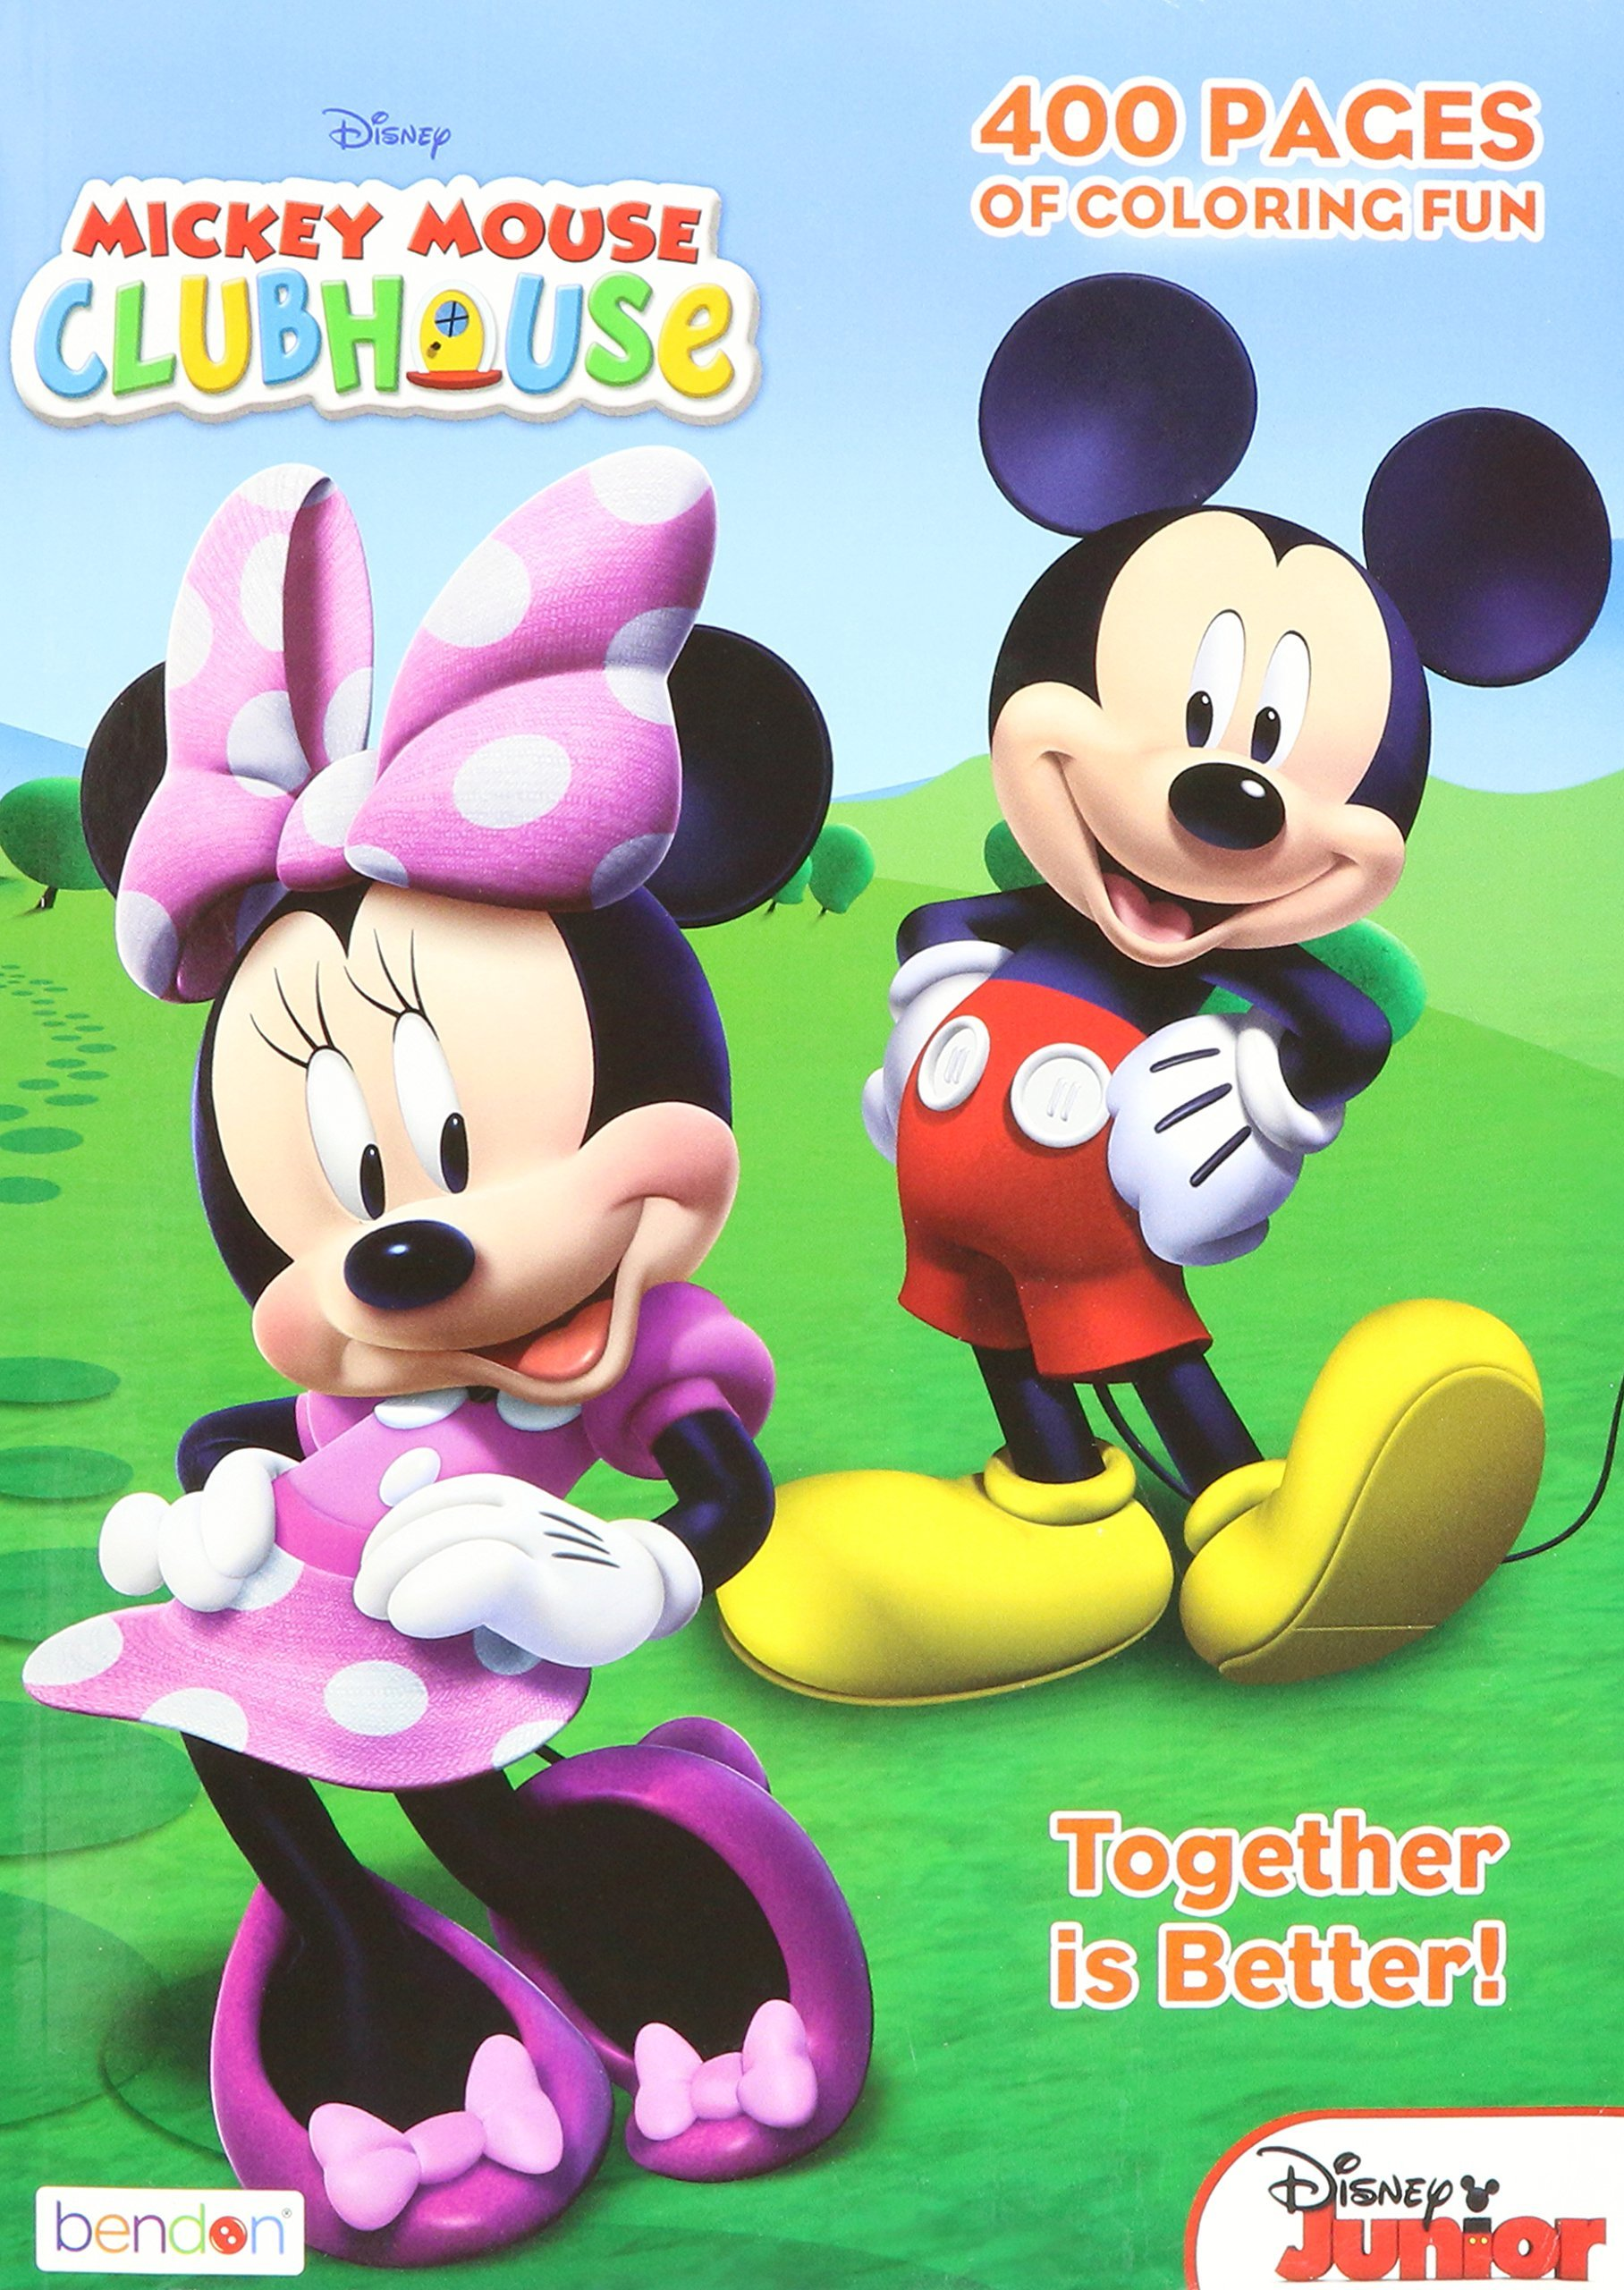 Mickey Mouse Clubhouse Gigantic Coloring Book